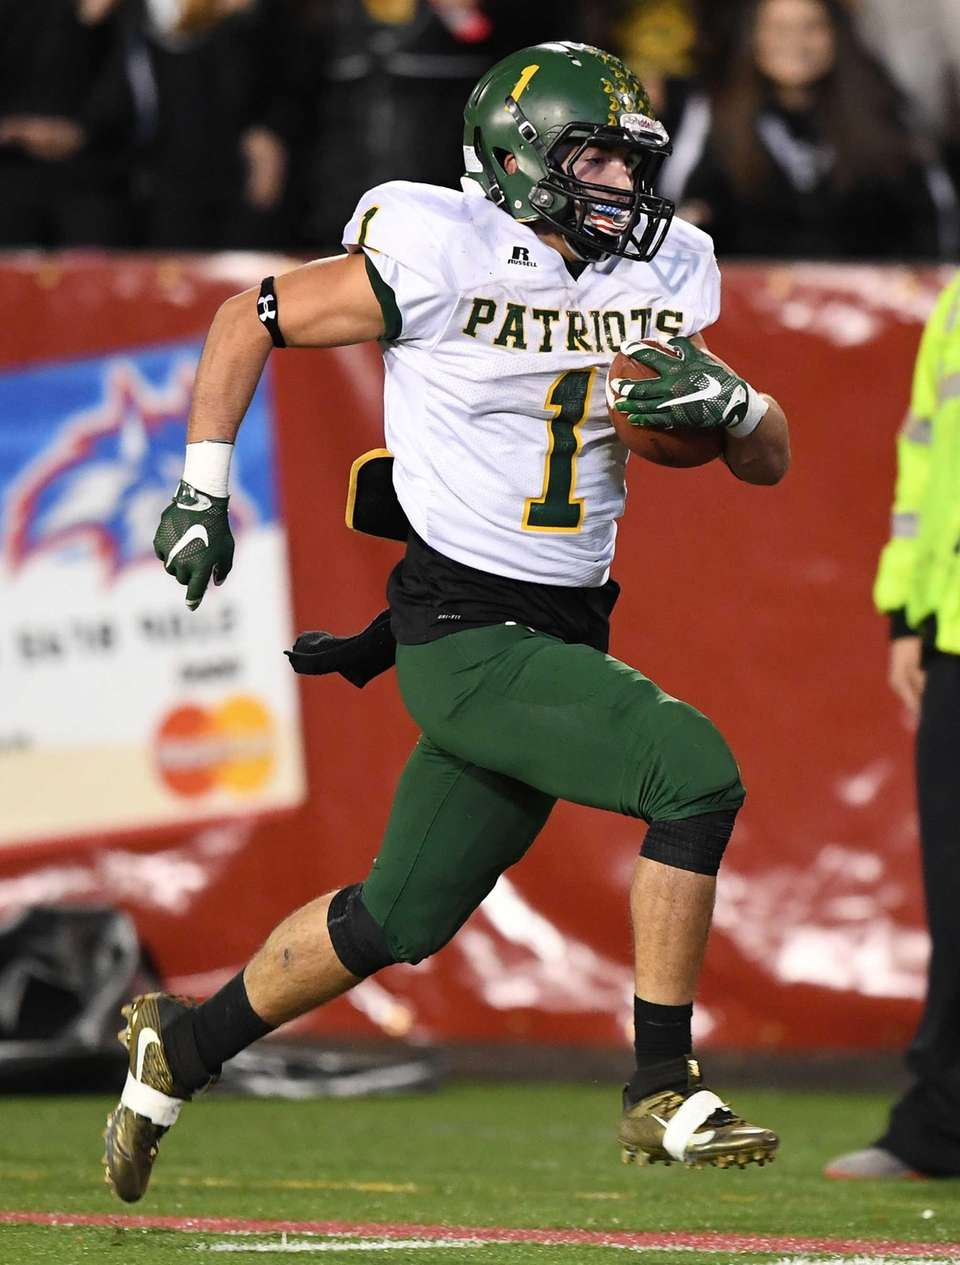 Ward Melville's John Corpac rushes for a touchdown